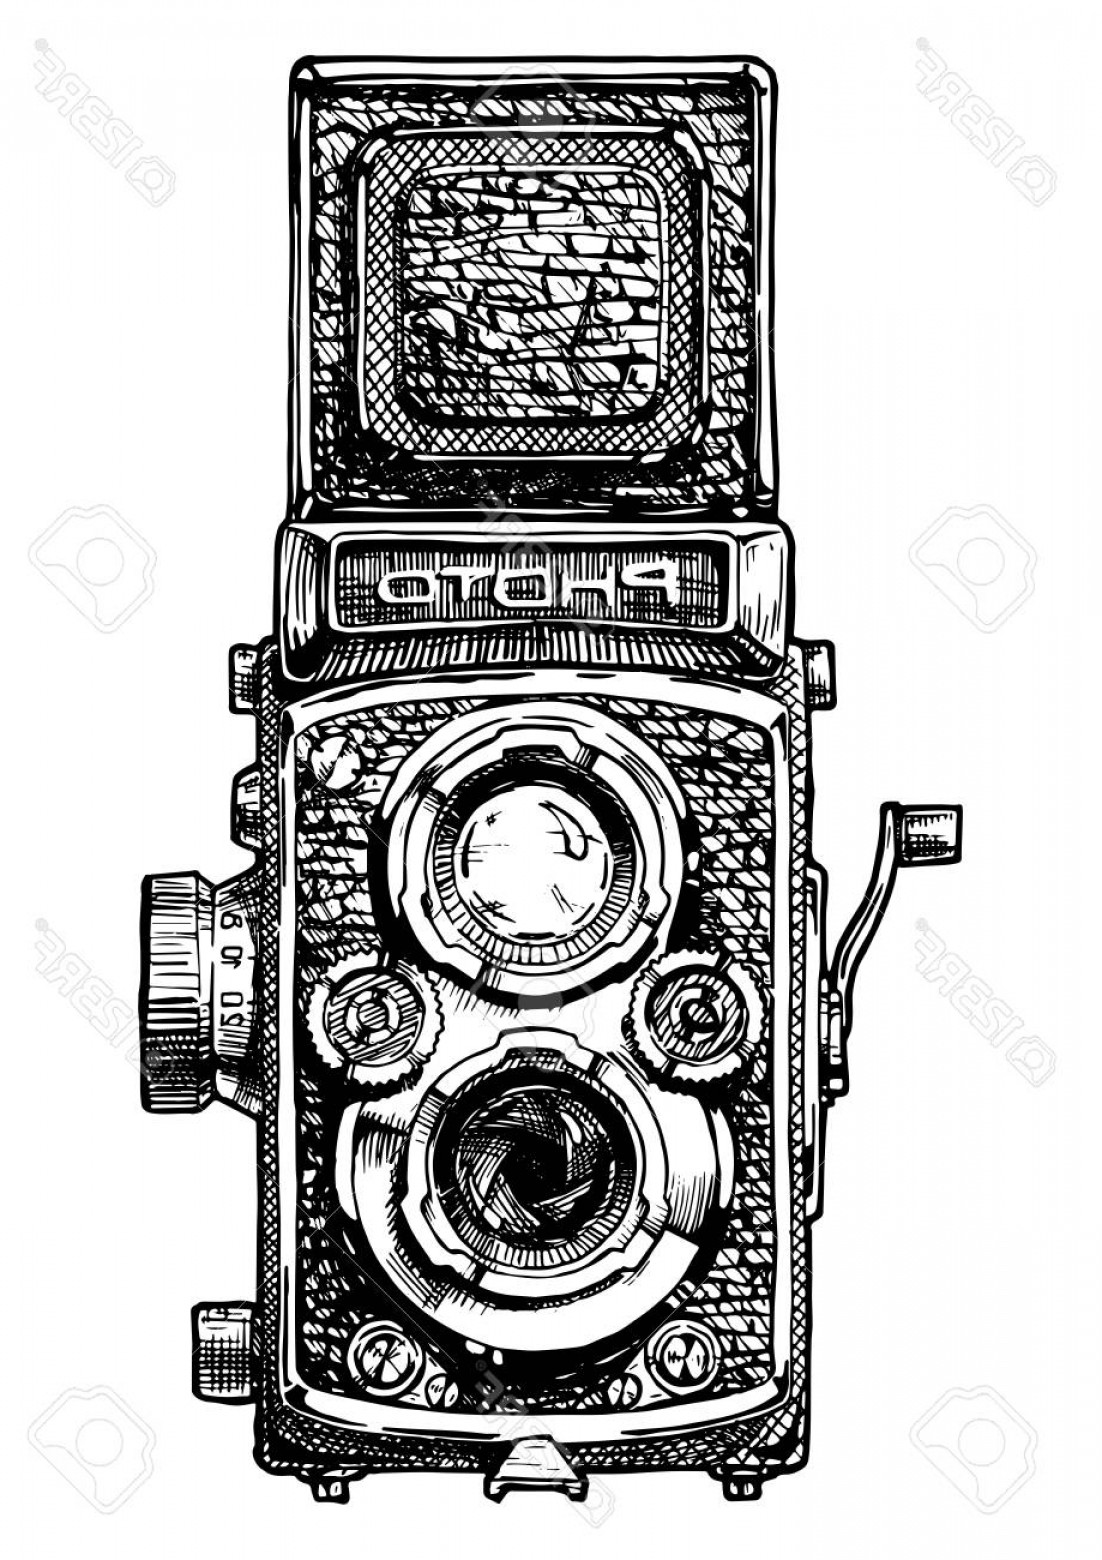 SLR Camera Vector: Photostock Vector Vector Hand Drawn Sketch Of Twin Lens Reflex Camera In Vintage Engraved Style On White Background